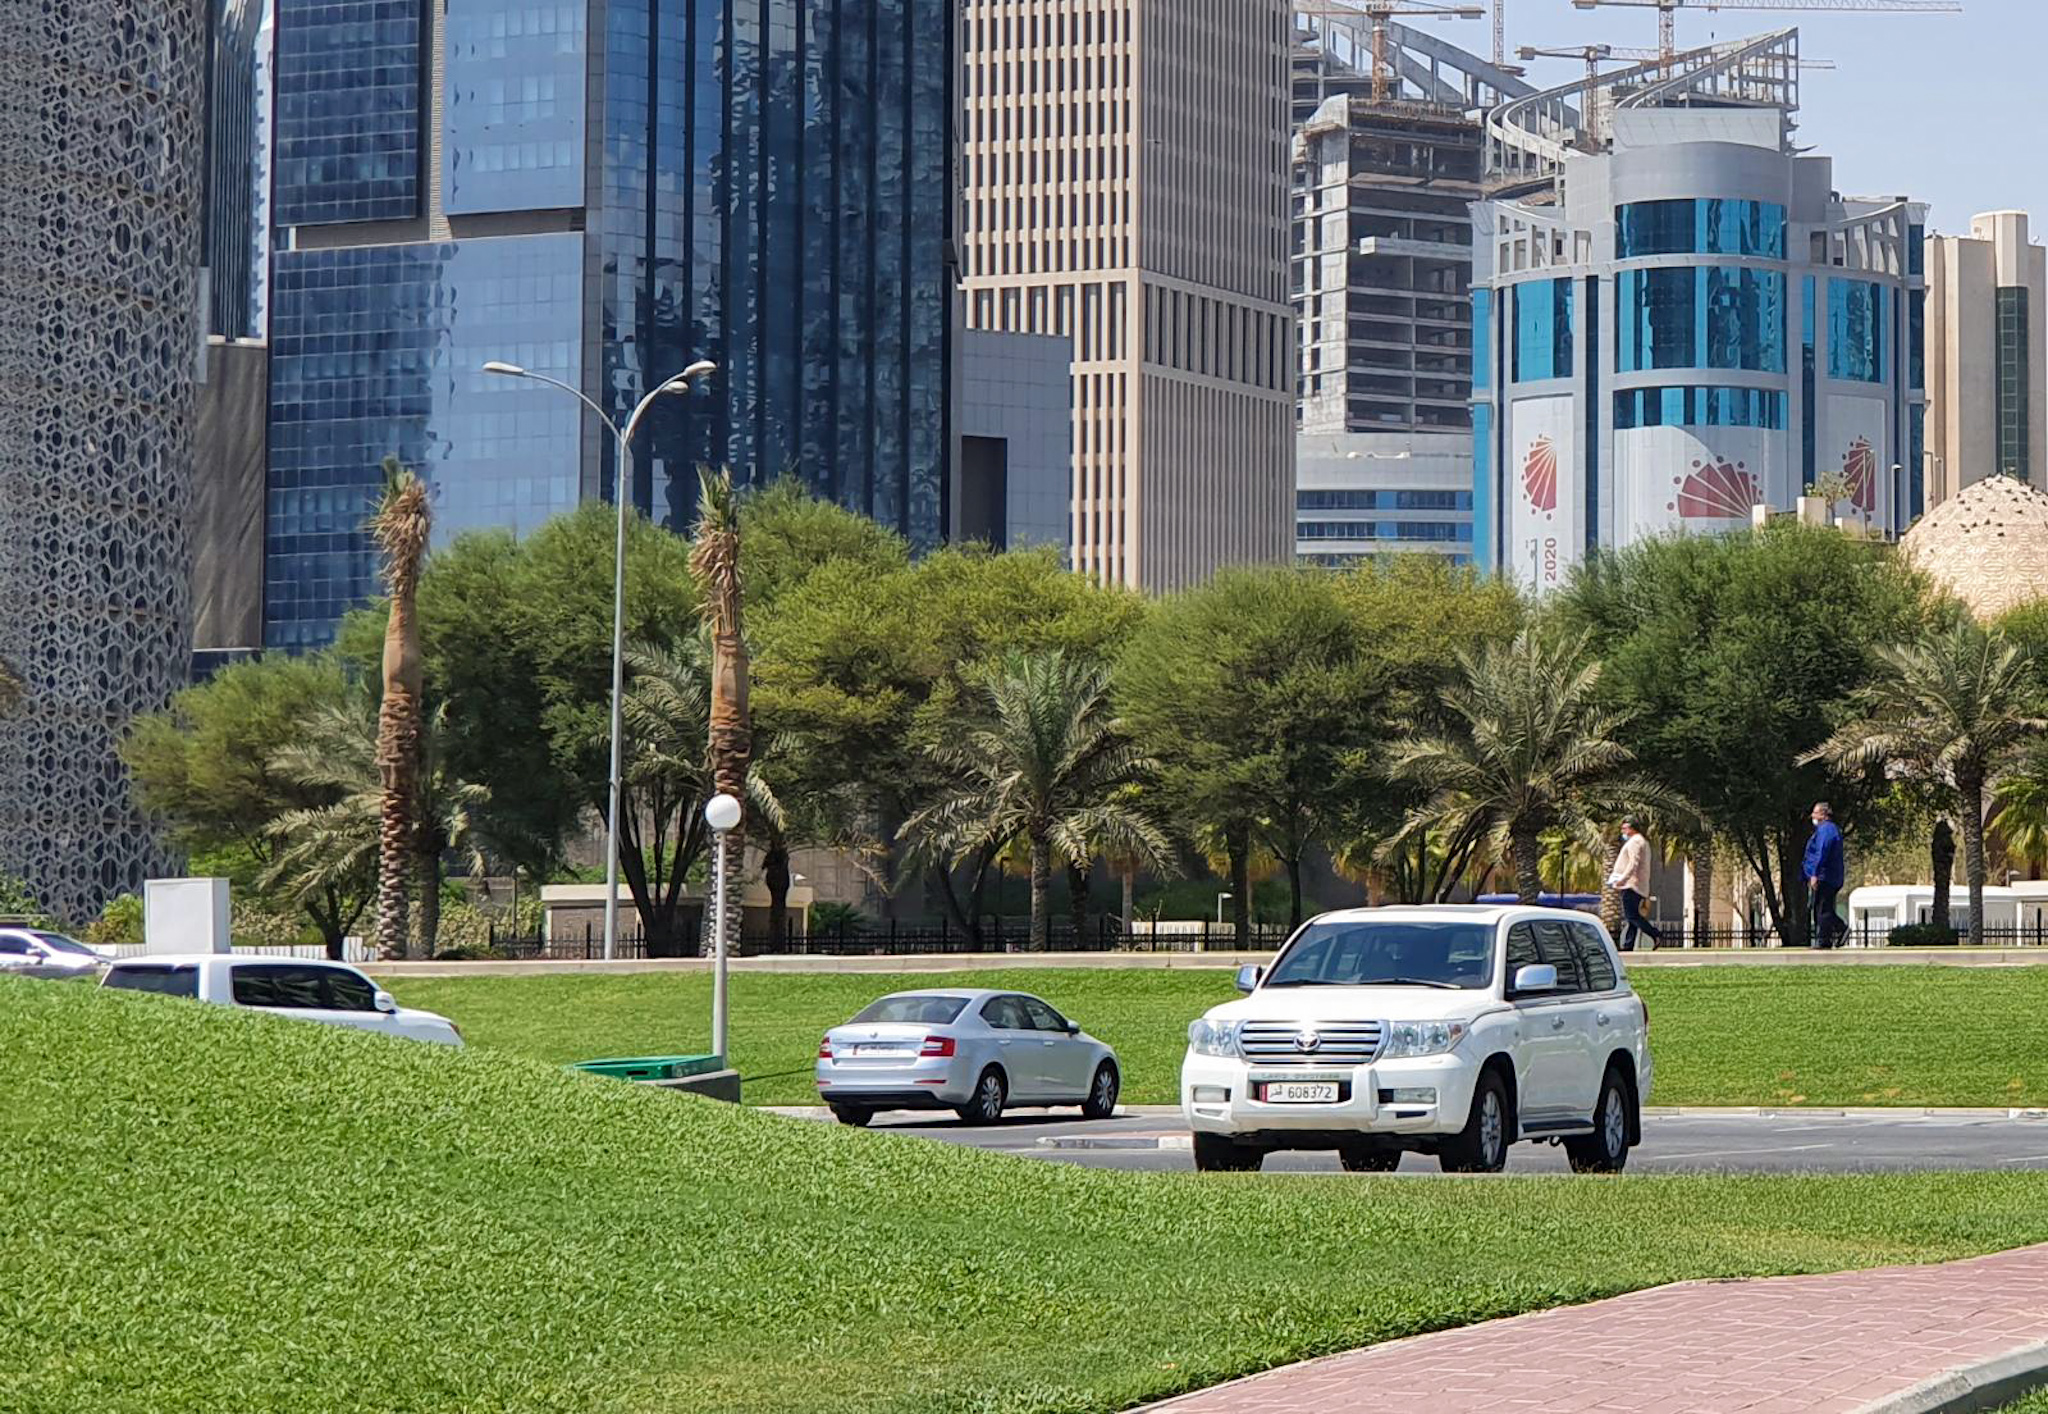 8 interesting things I discovered while driving a land cruiser in Qatar.